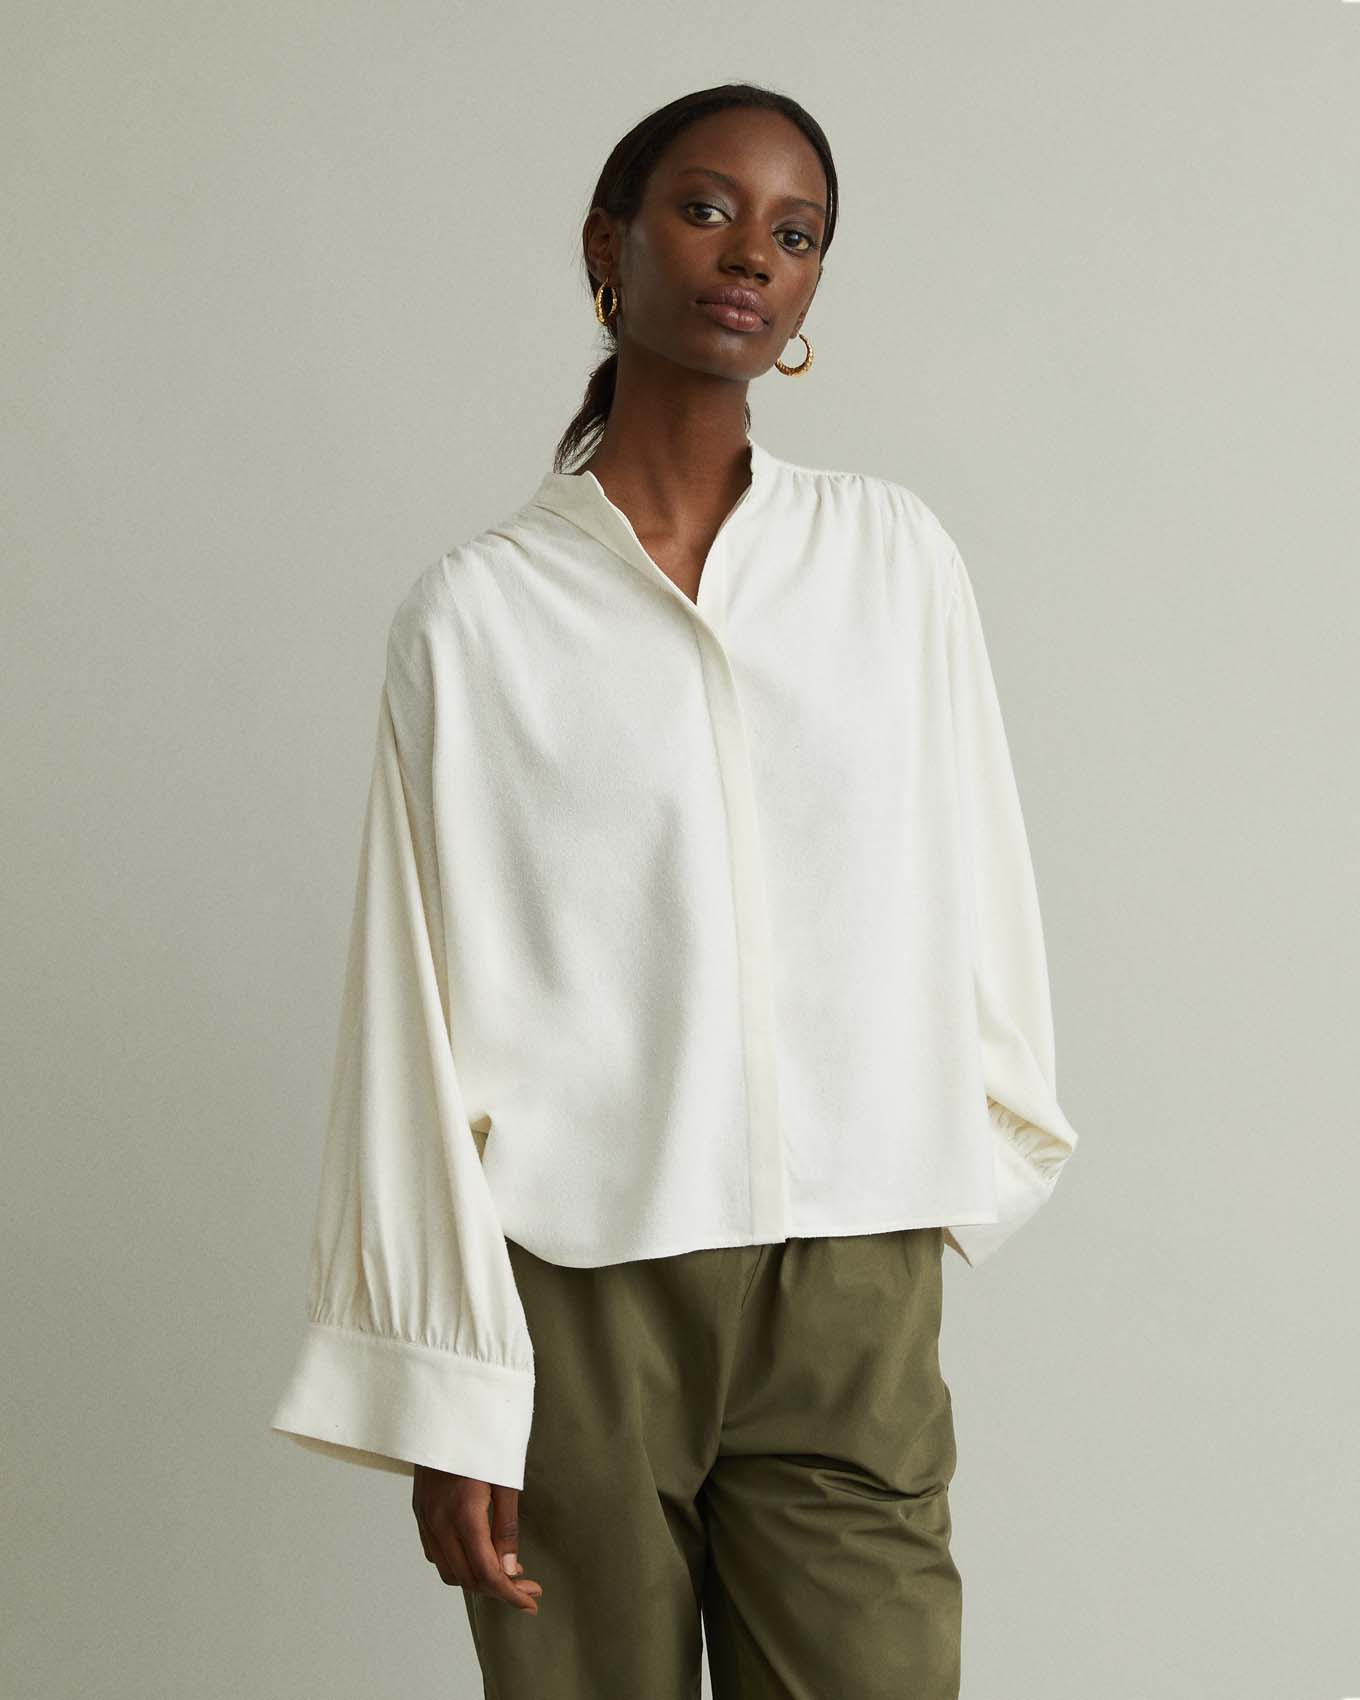 https://ca.wantapothecary.com/products/cali-textured-silk-blouse